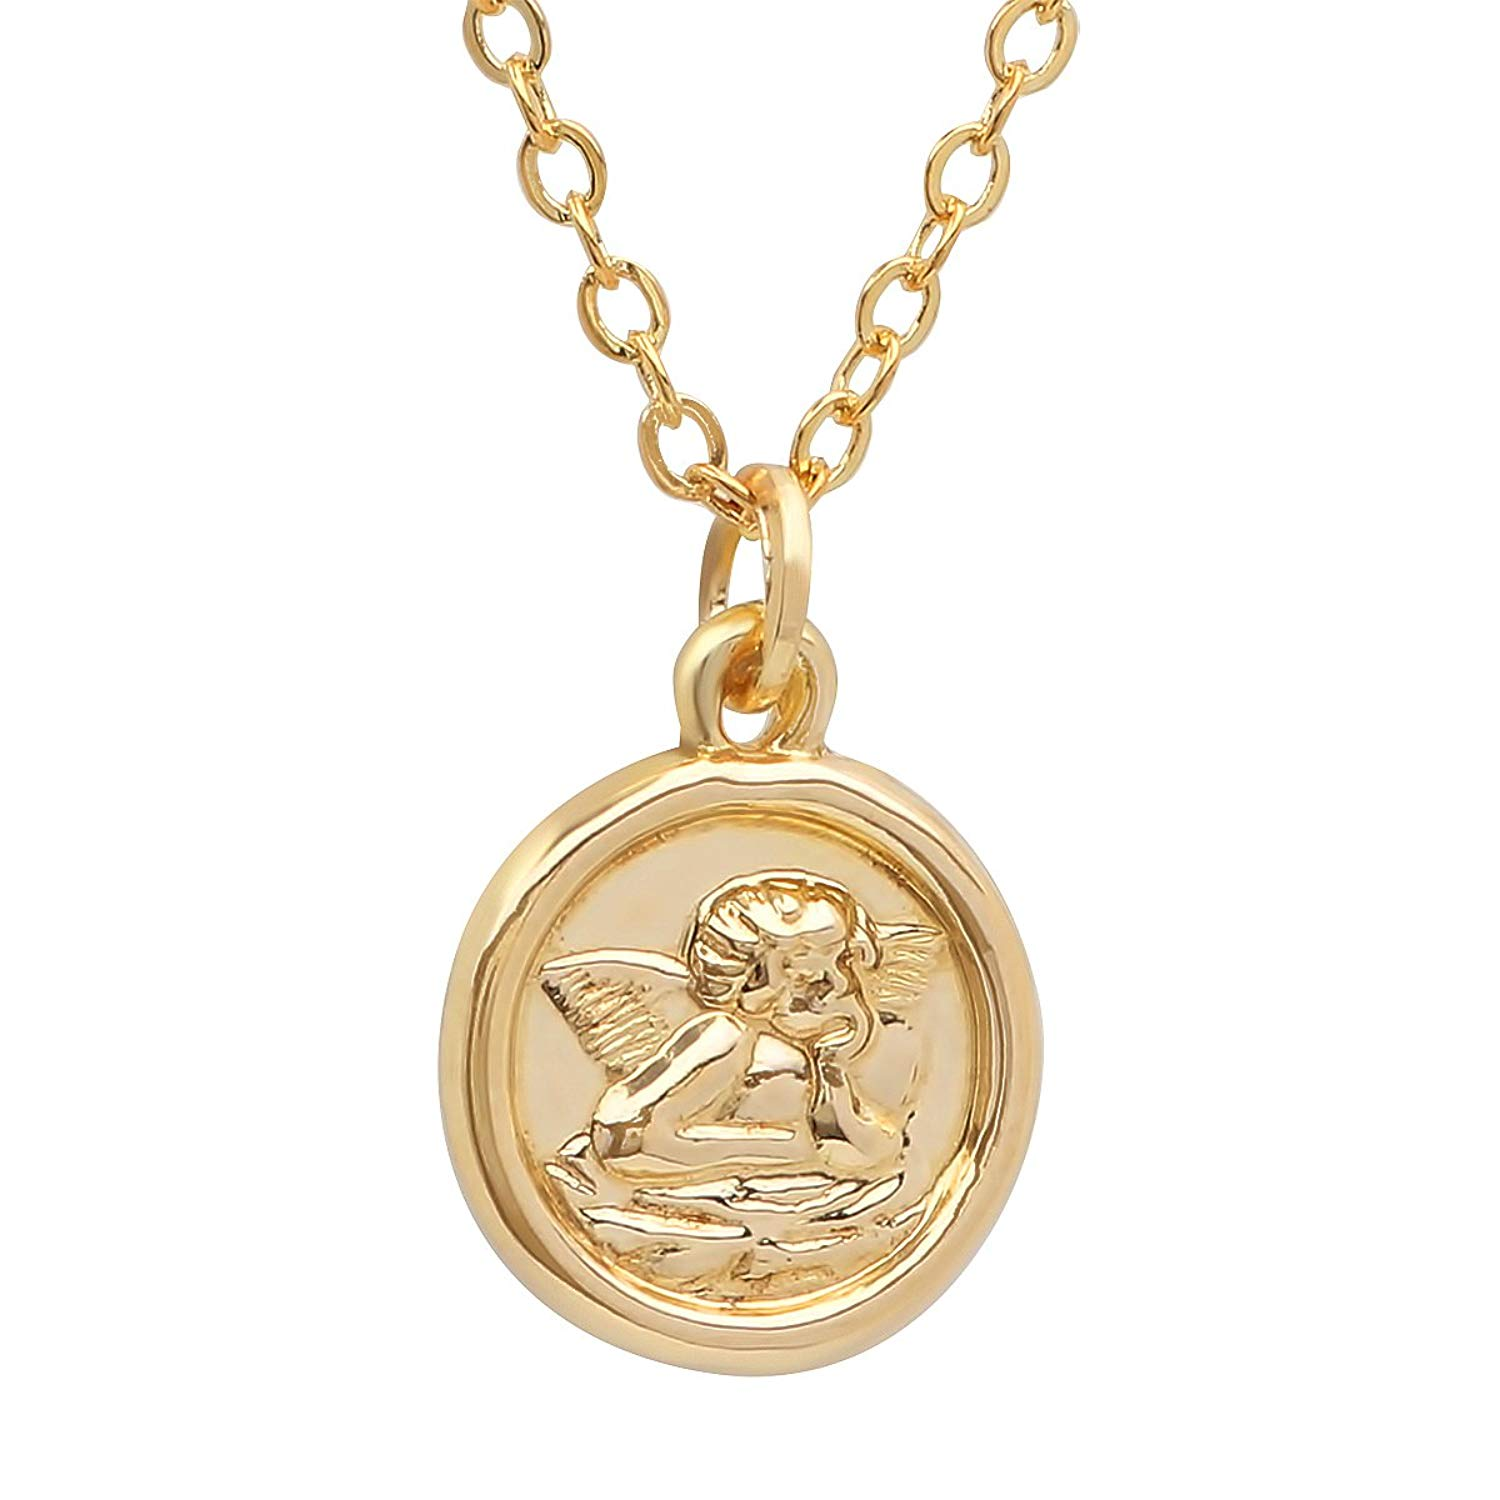 Pori Jewelers 14K Solid Yellow Gold Religious Angel Medallion Pendant in 14K Gold cable chain -18""